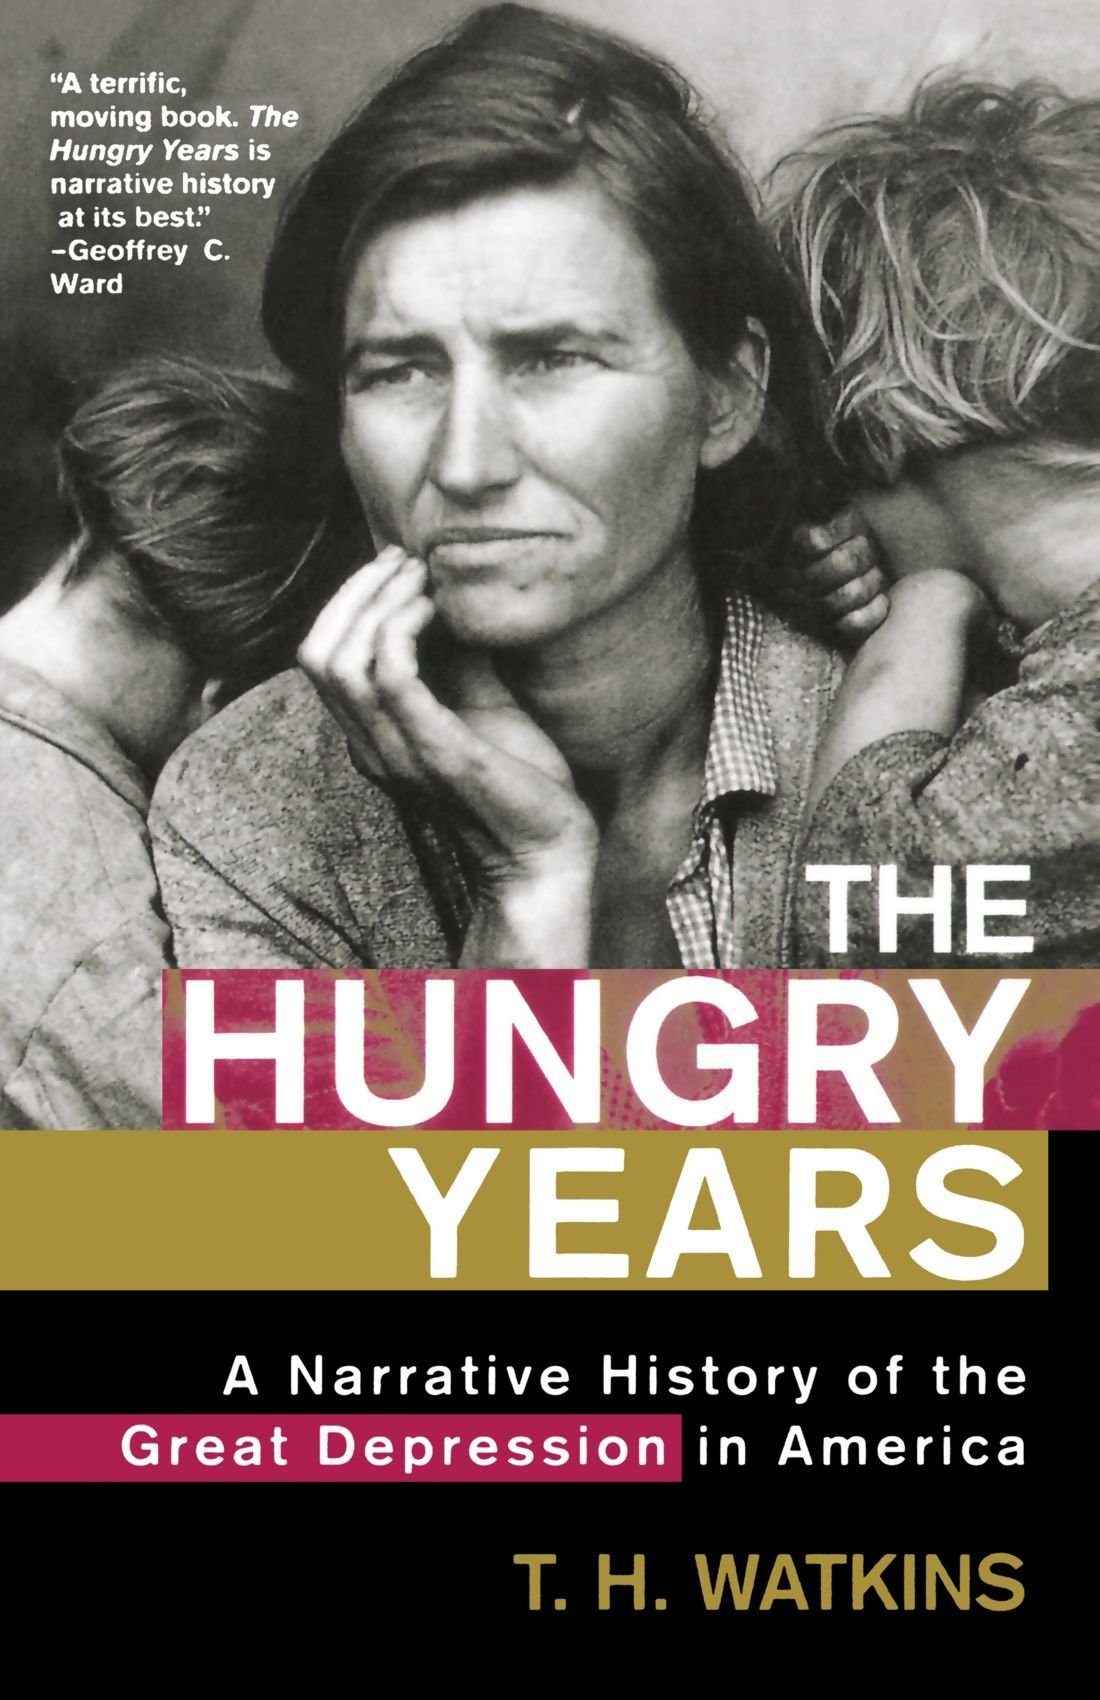 Download The Hungry Years: A Narrative History of the Great Depression in America PDF